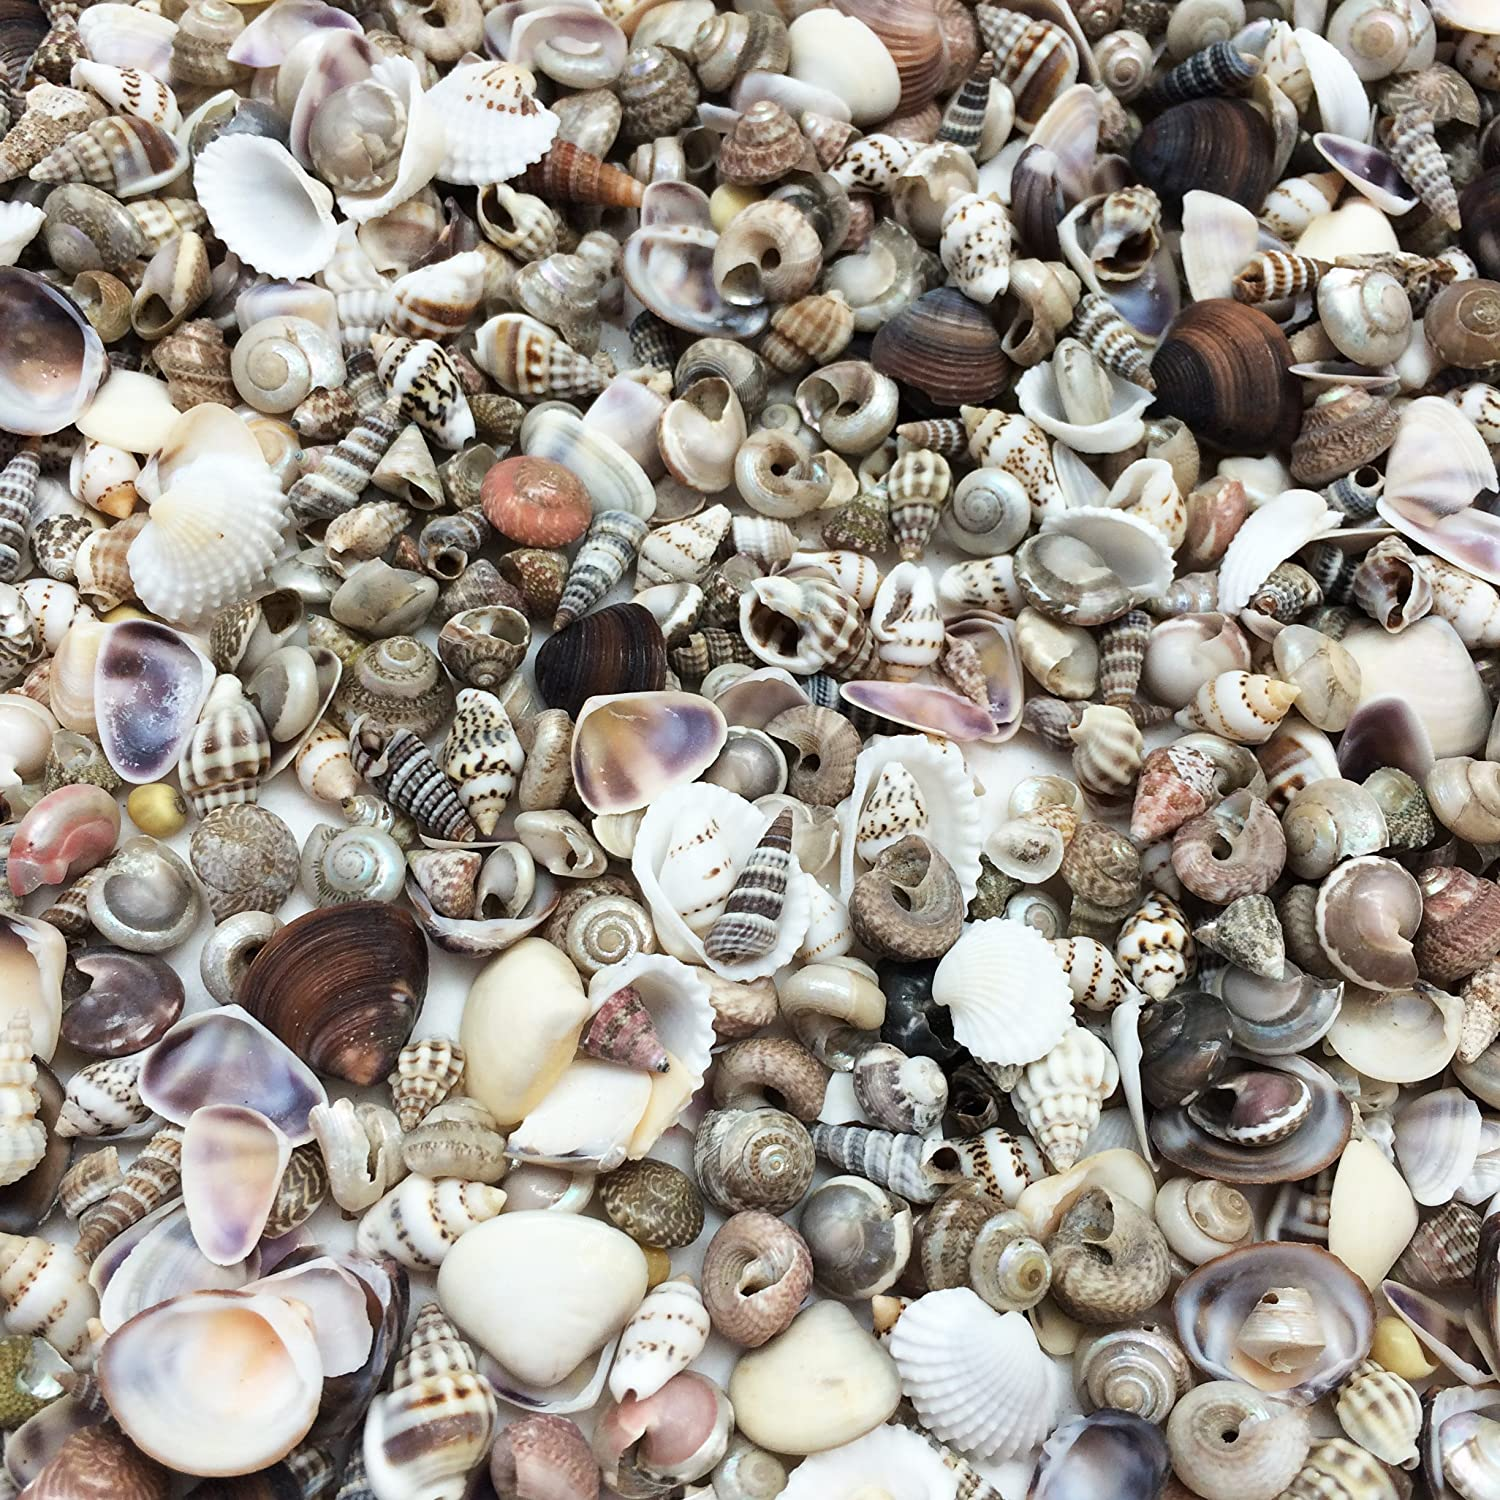 PEPPERLONELY Small Mix Sea Shells, Very Clean, 8 OZ Apprx. 340+ PC Shells, 1/2 Inch ~ 1 Inch